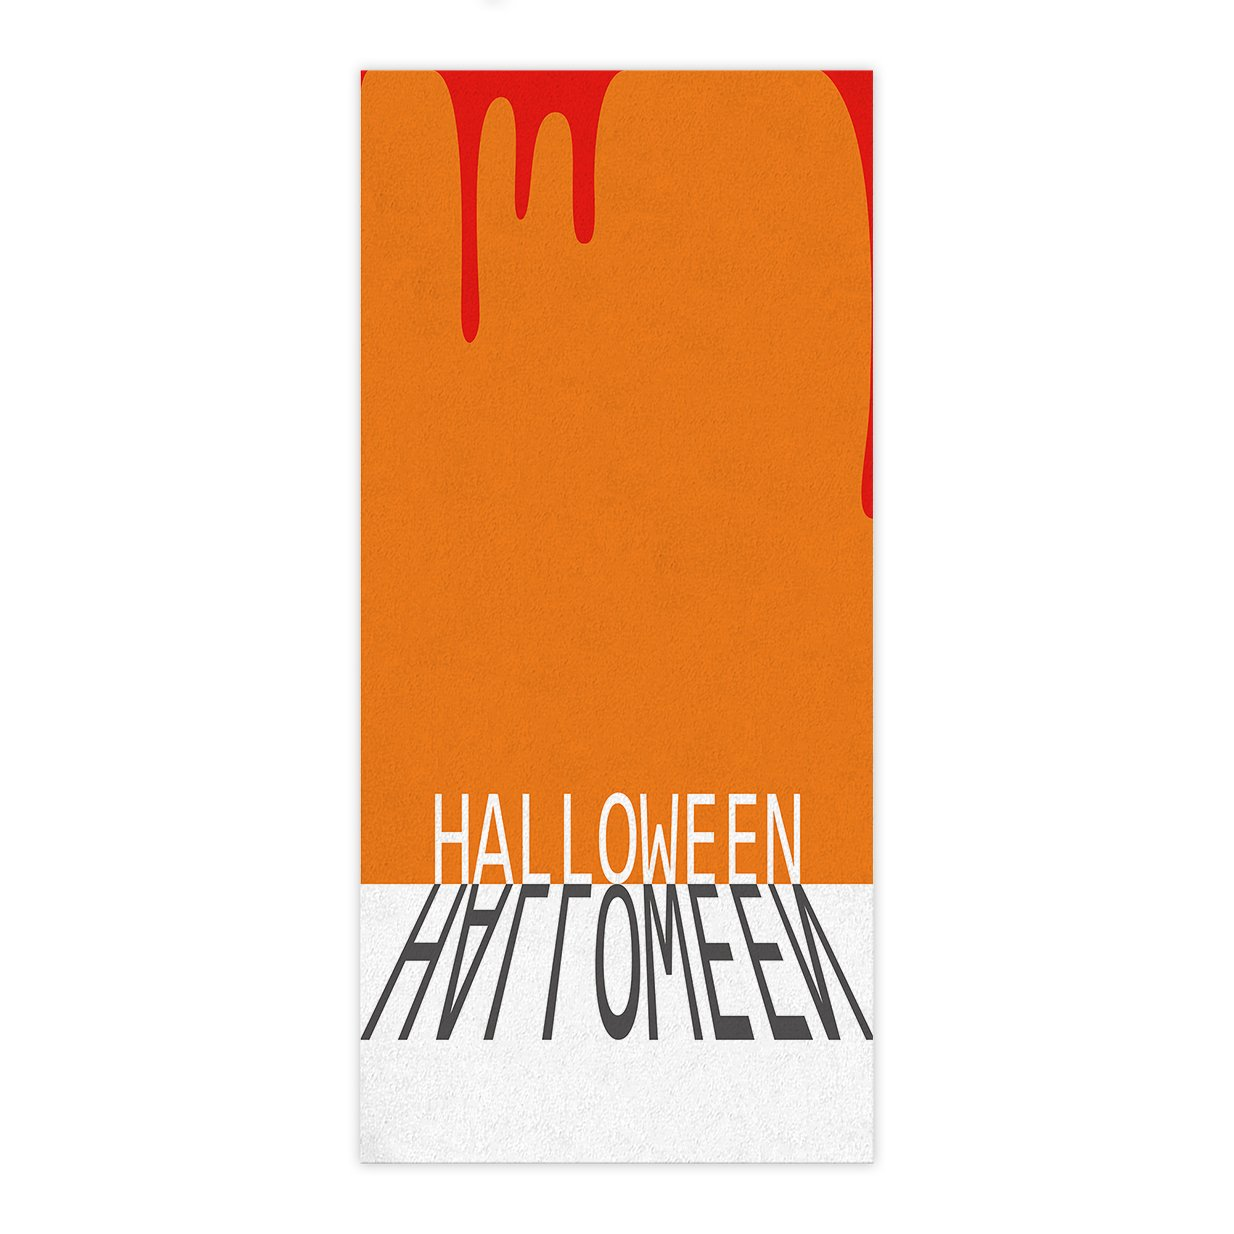 OxOHome Custom Bath Towel Quick Dry Absorbent Towels Spa Shower Wrap for College Dorms, Gyms, Locker Rooms, 27.5 x 55 inch - Halloween Theme